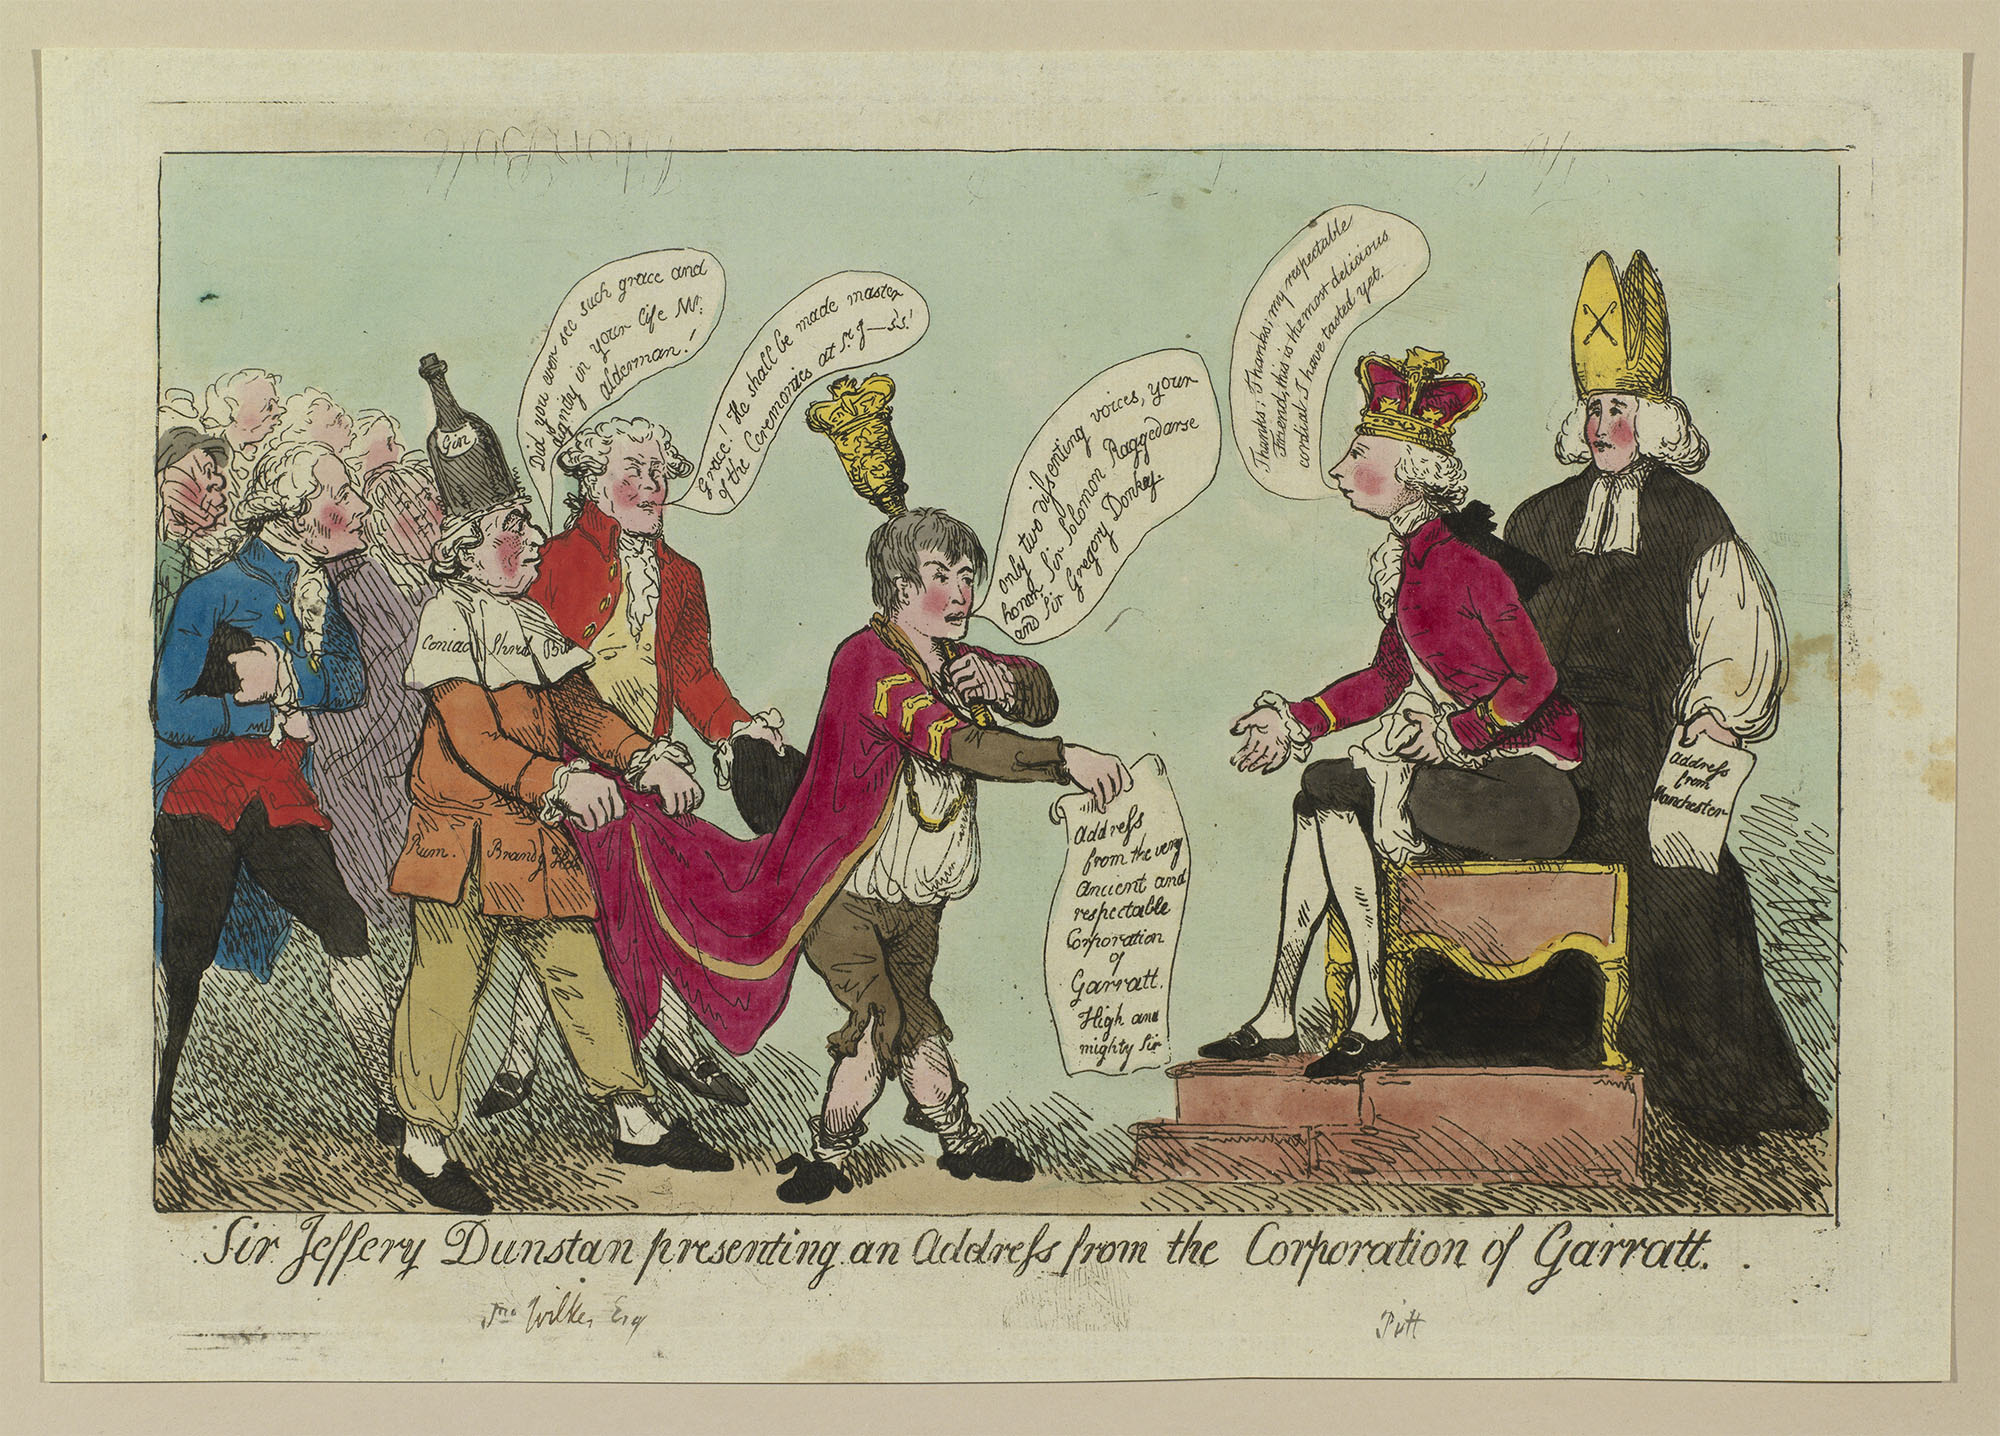 Sir Jeffery Dunstan Presenting an Address from the Corporation of Garrett, 1788. Royal Collection Trust.